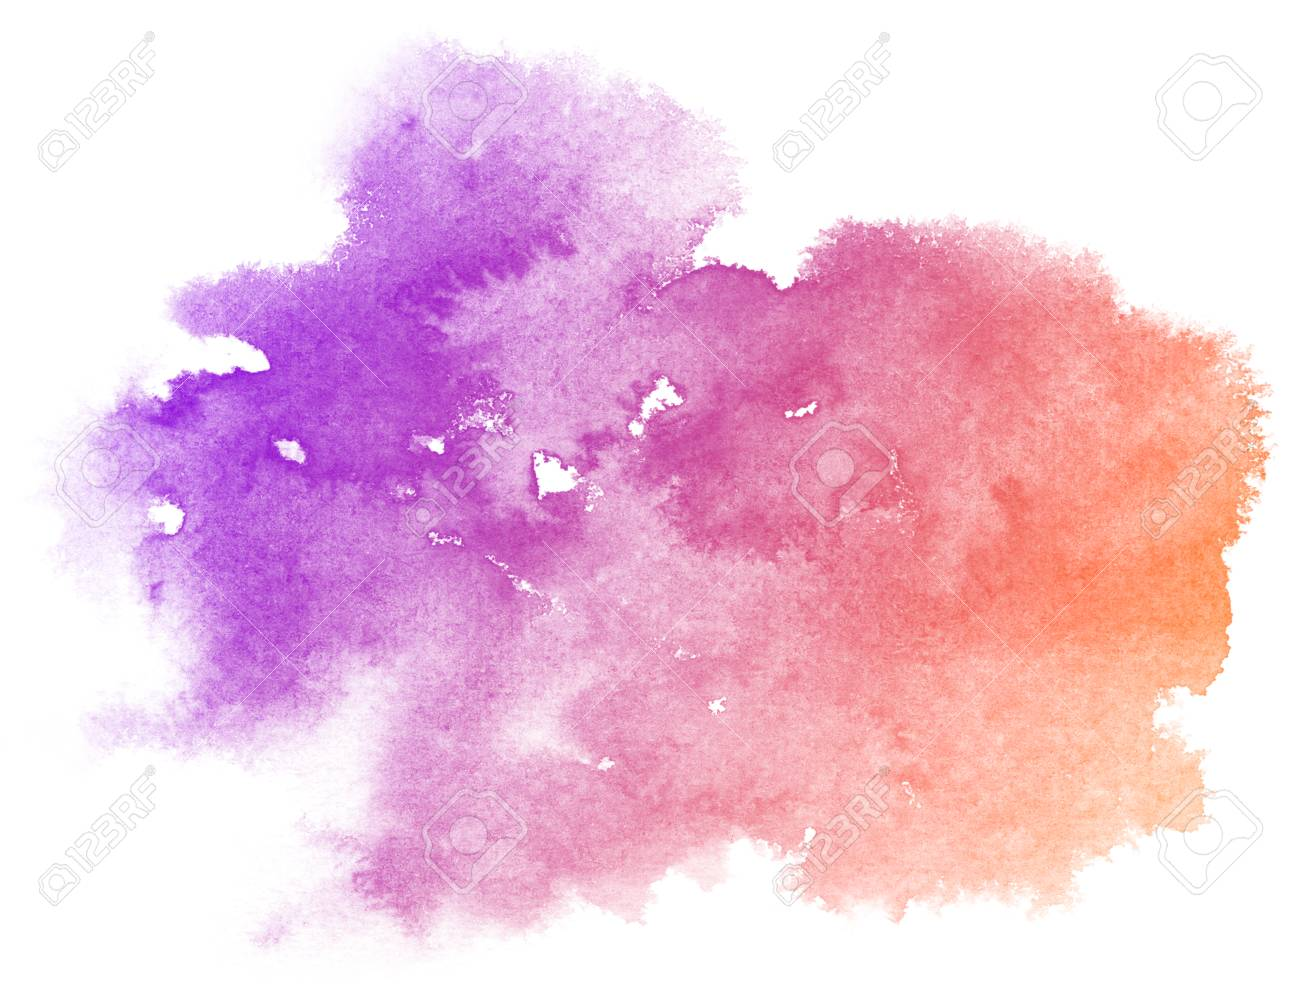 Abstract Purple Watercolor On White Background The Color Splashing